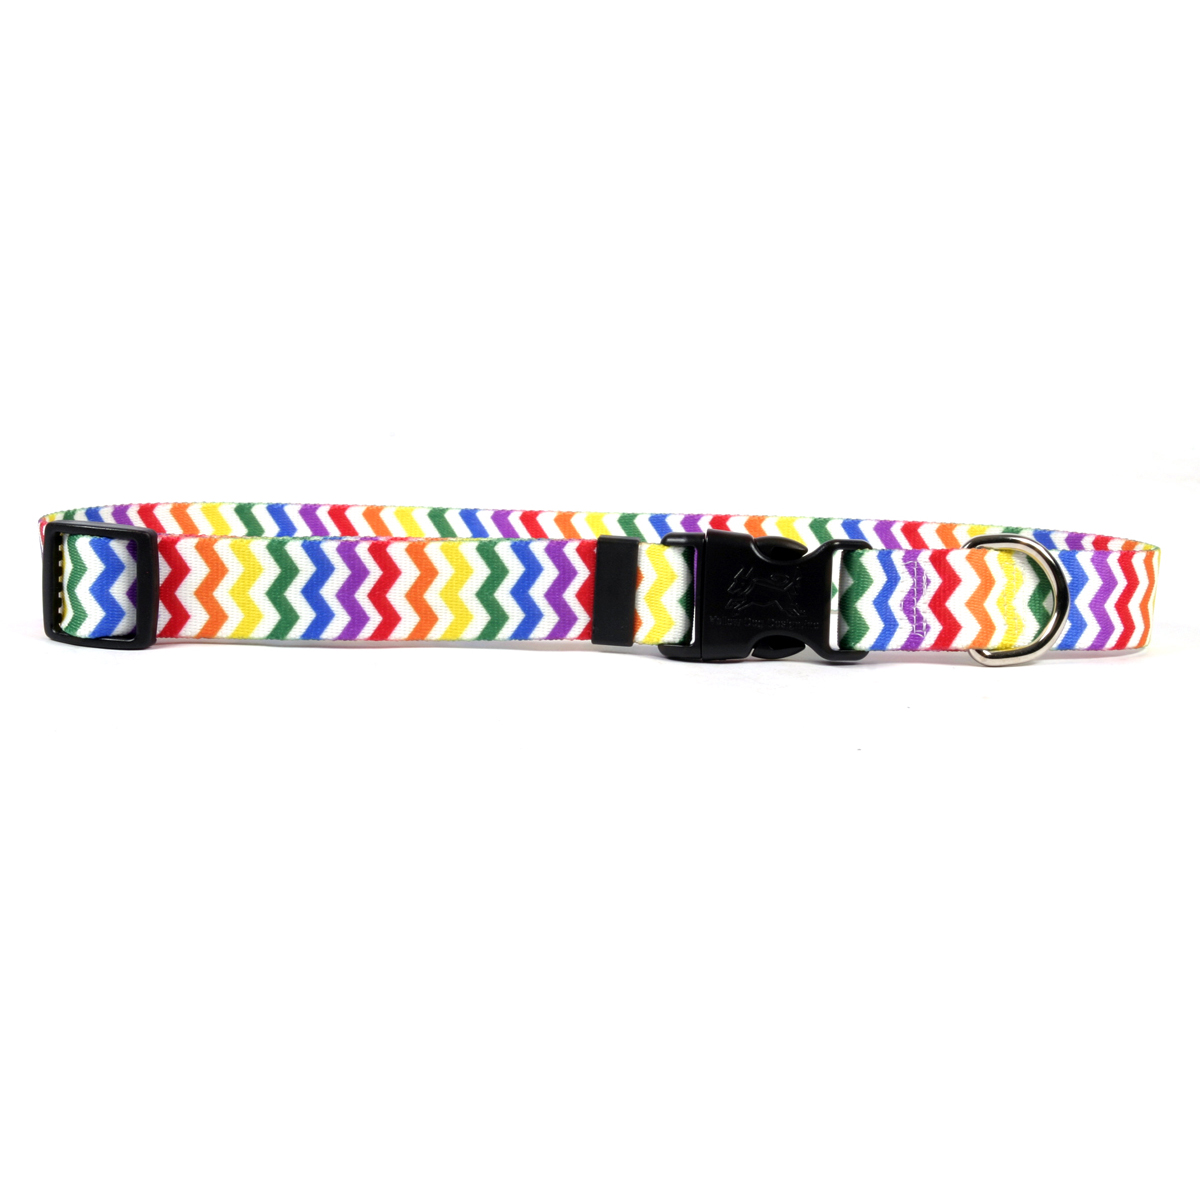 Chevron Dog Collar by Yellow Dog - Candy Stripe